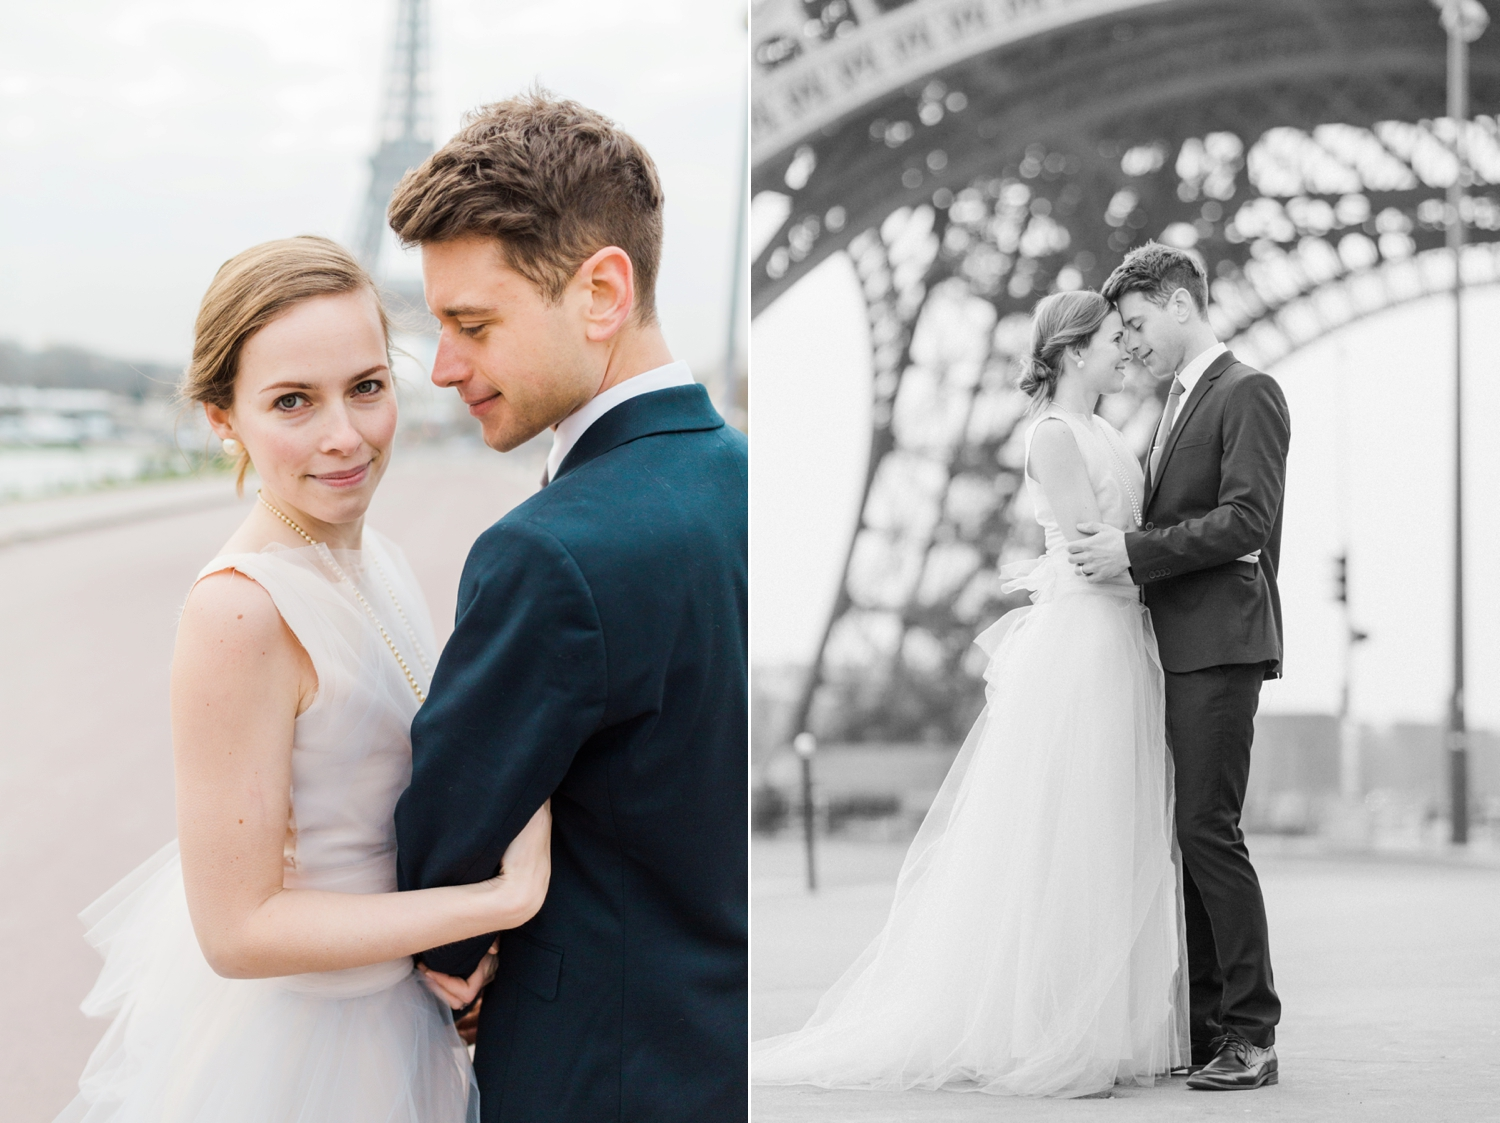 Paris-France-Wedding-Photography-Chloe-Luka-Photography_7670.jpg